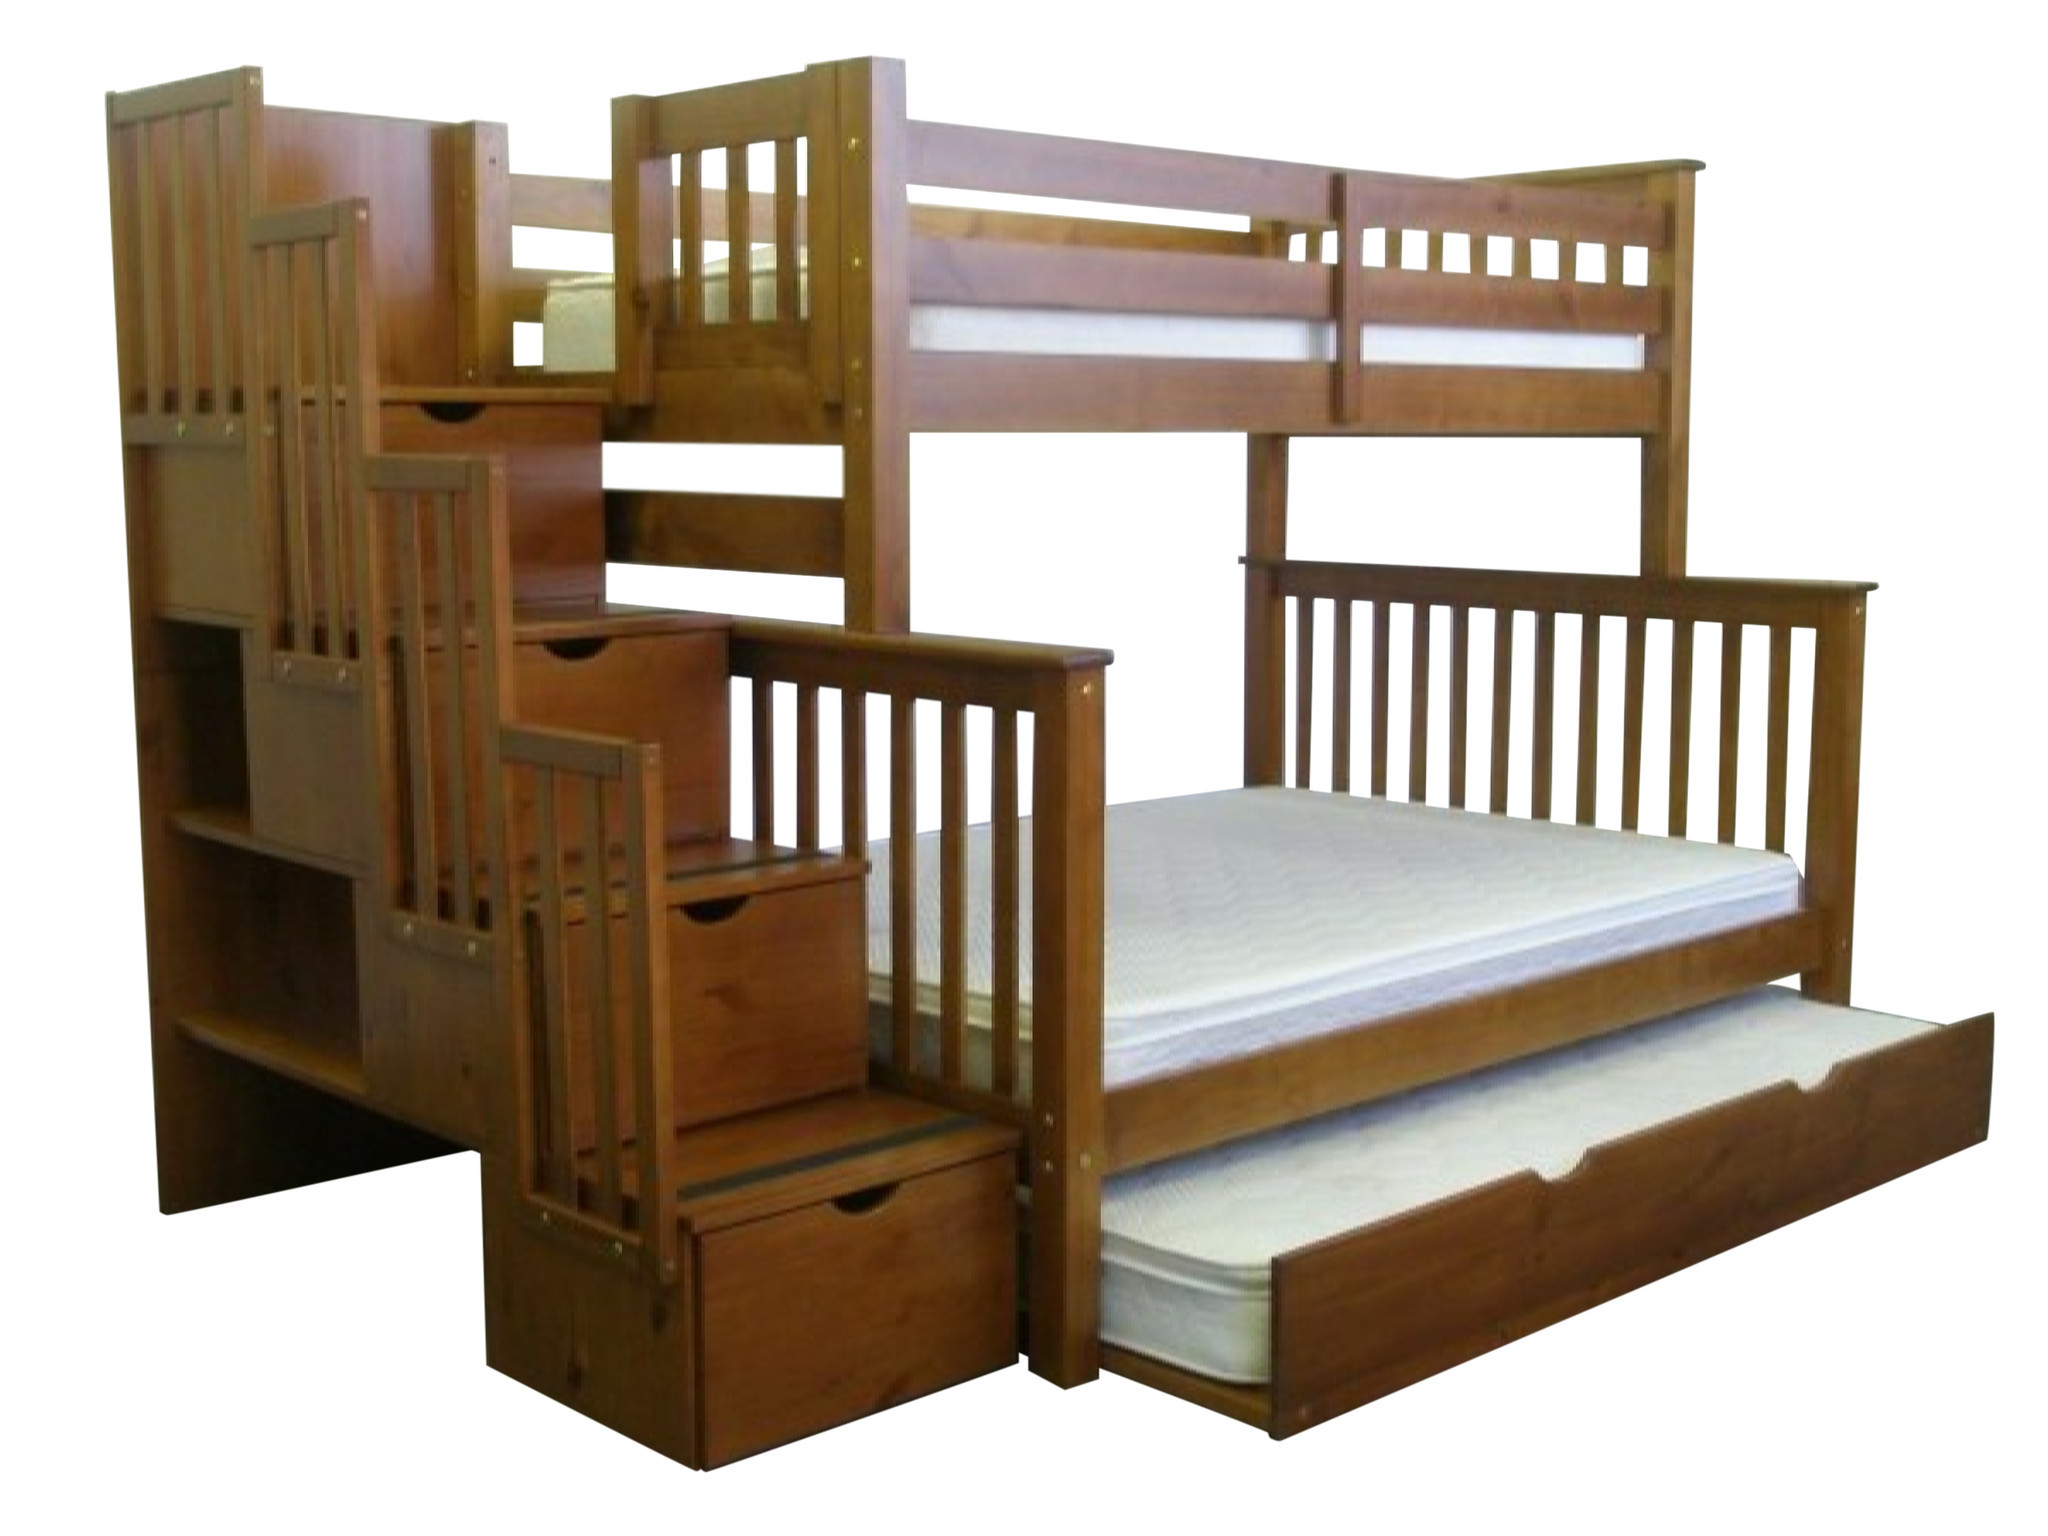 Majestic bunk beds with stairs bedz king twin over full stairway bunk bed pksnlit